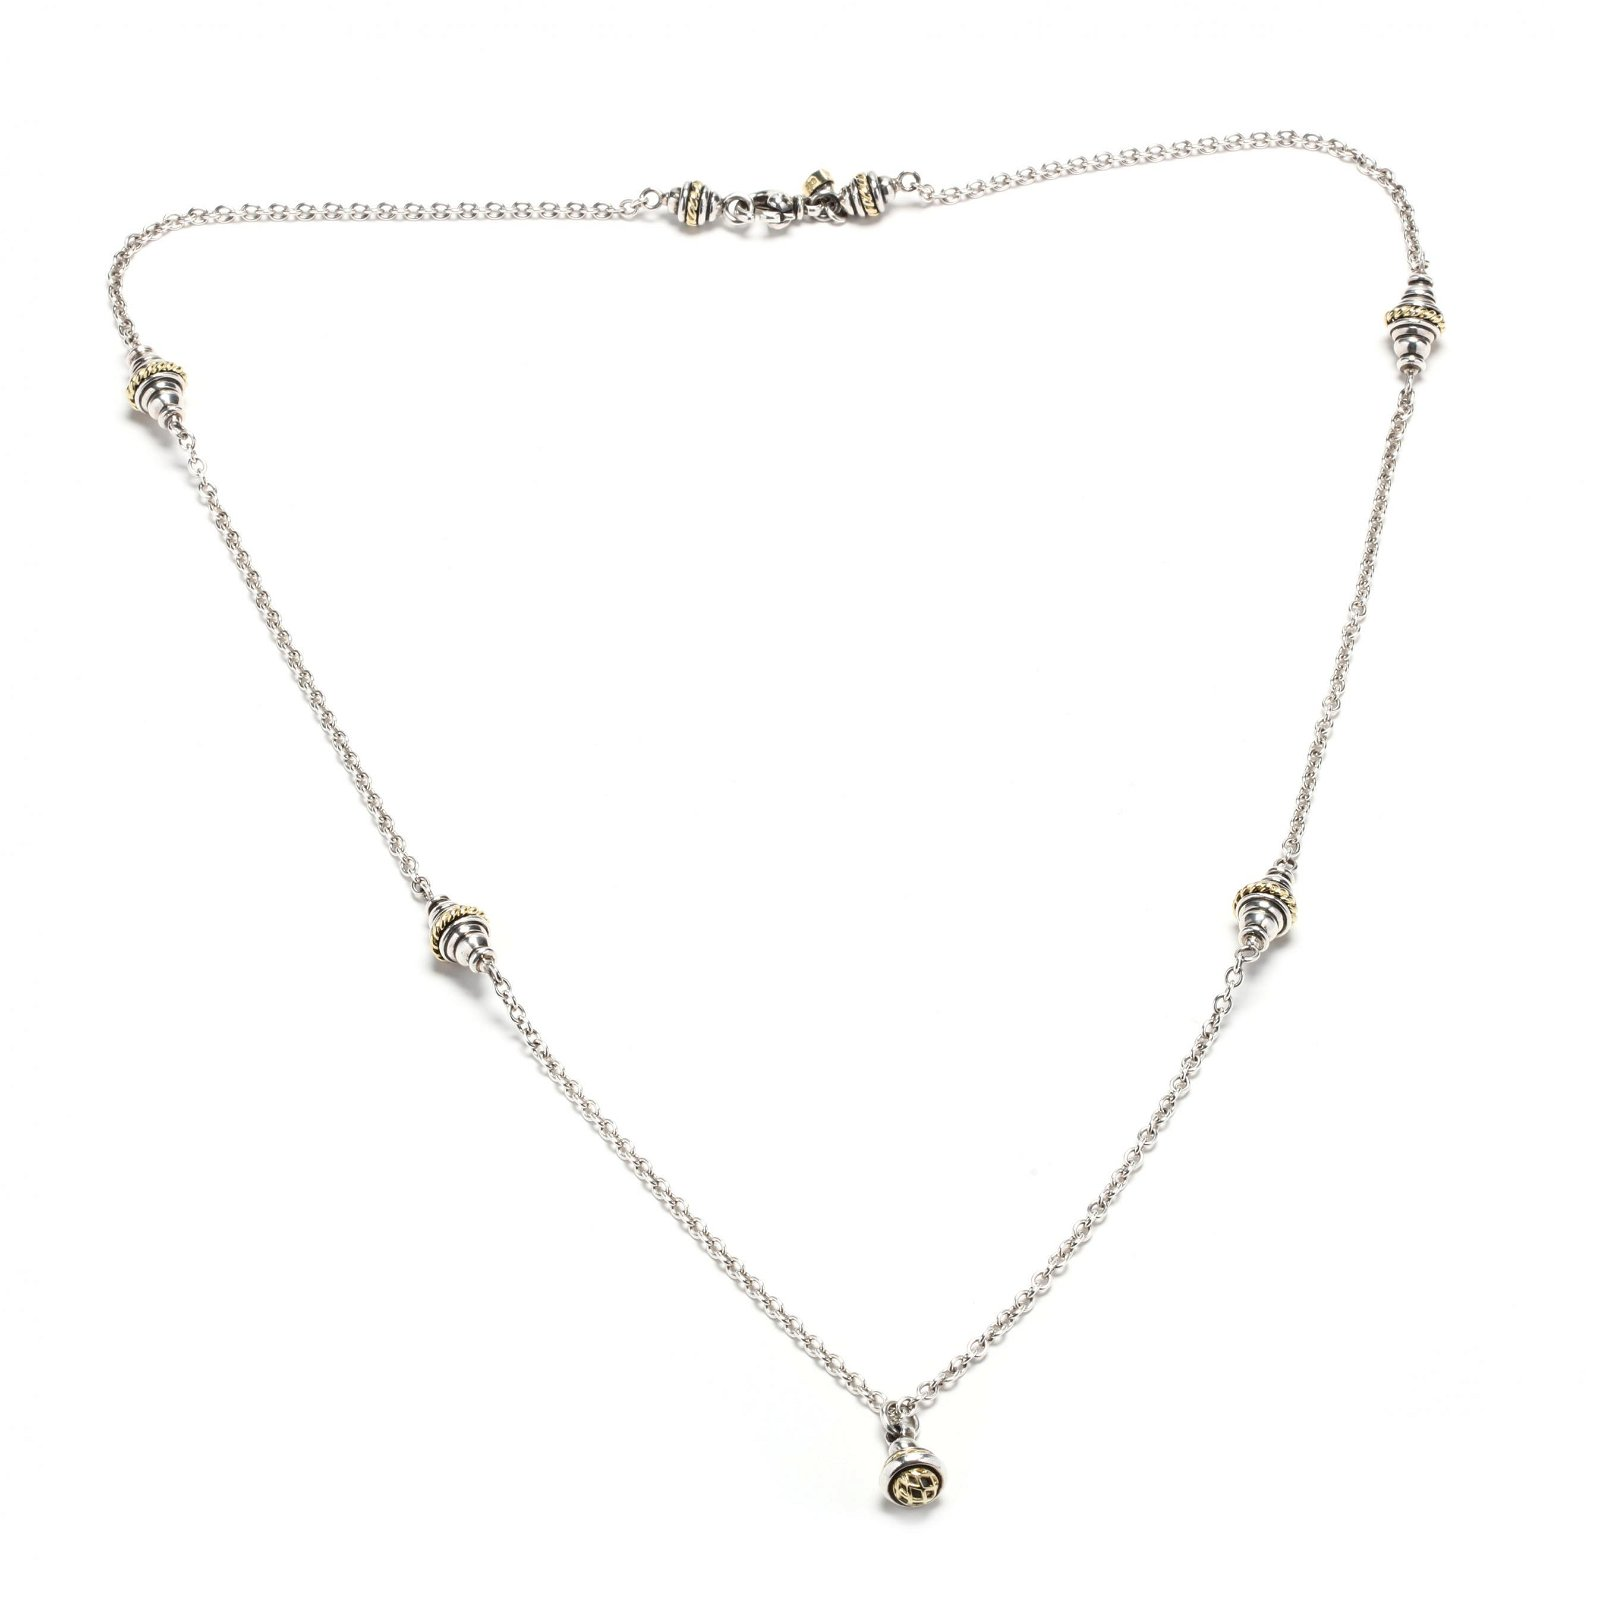 Sterling Silver and 18KT Gold Necklace, David Wysor